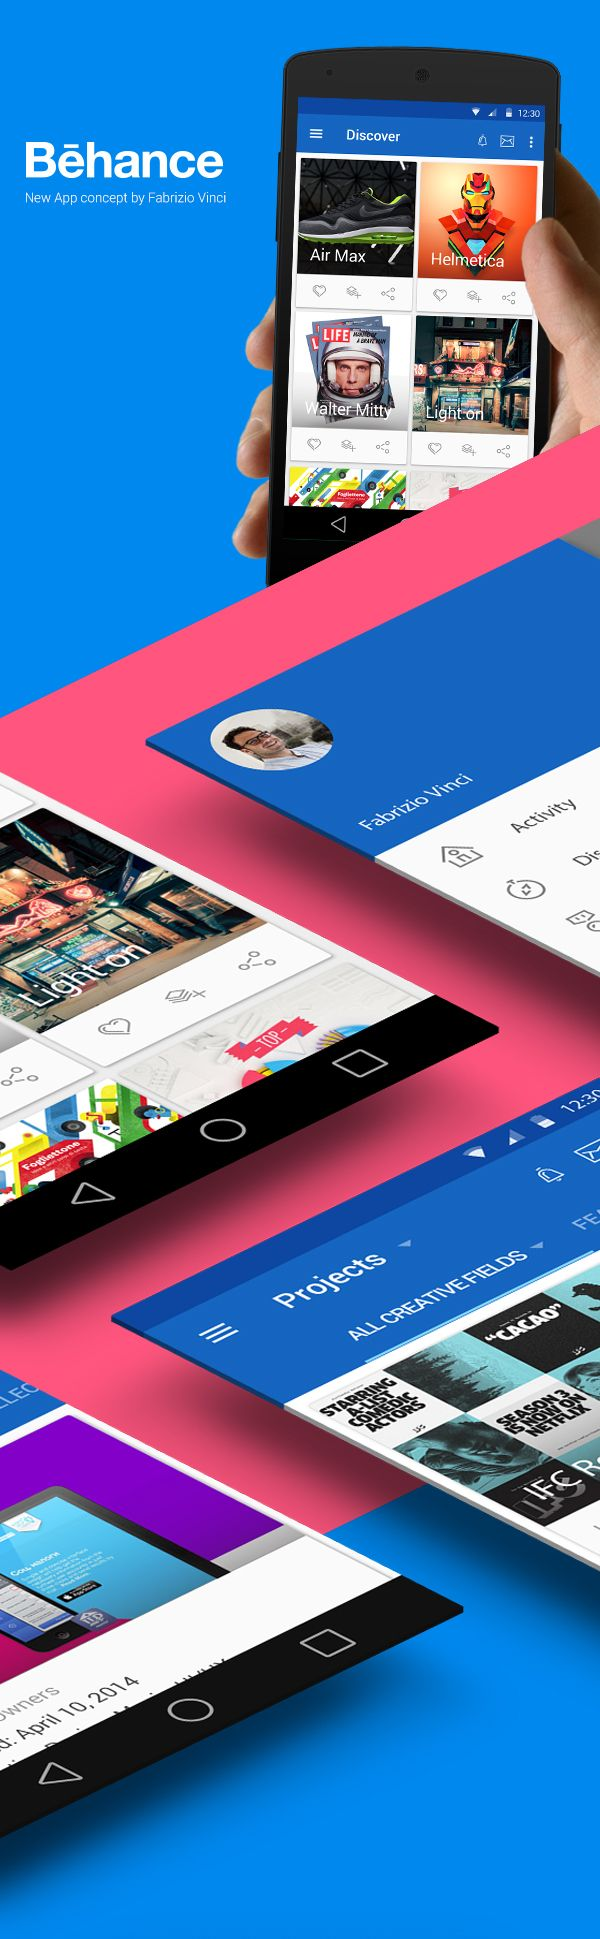 UI Material Design Behance Android L  Android Application development company  http://goo.gl/tMXvqB